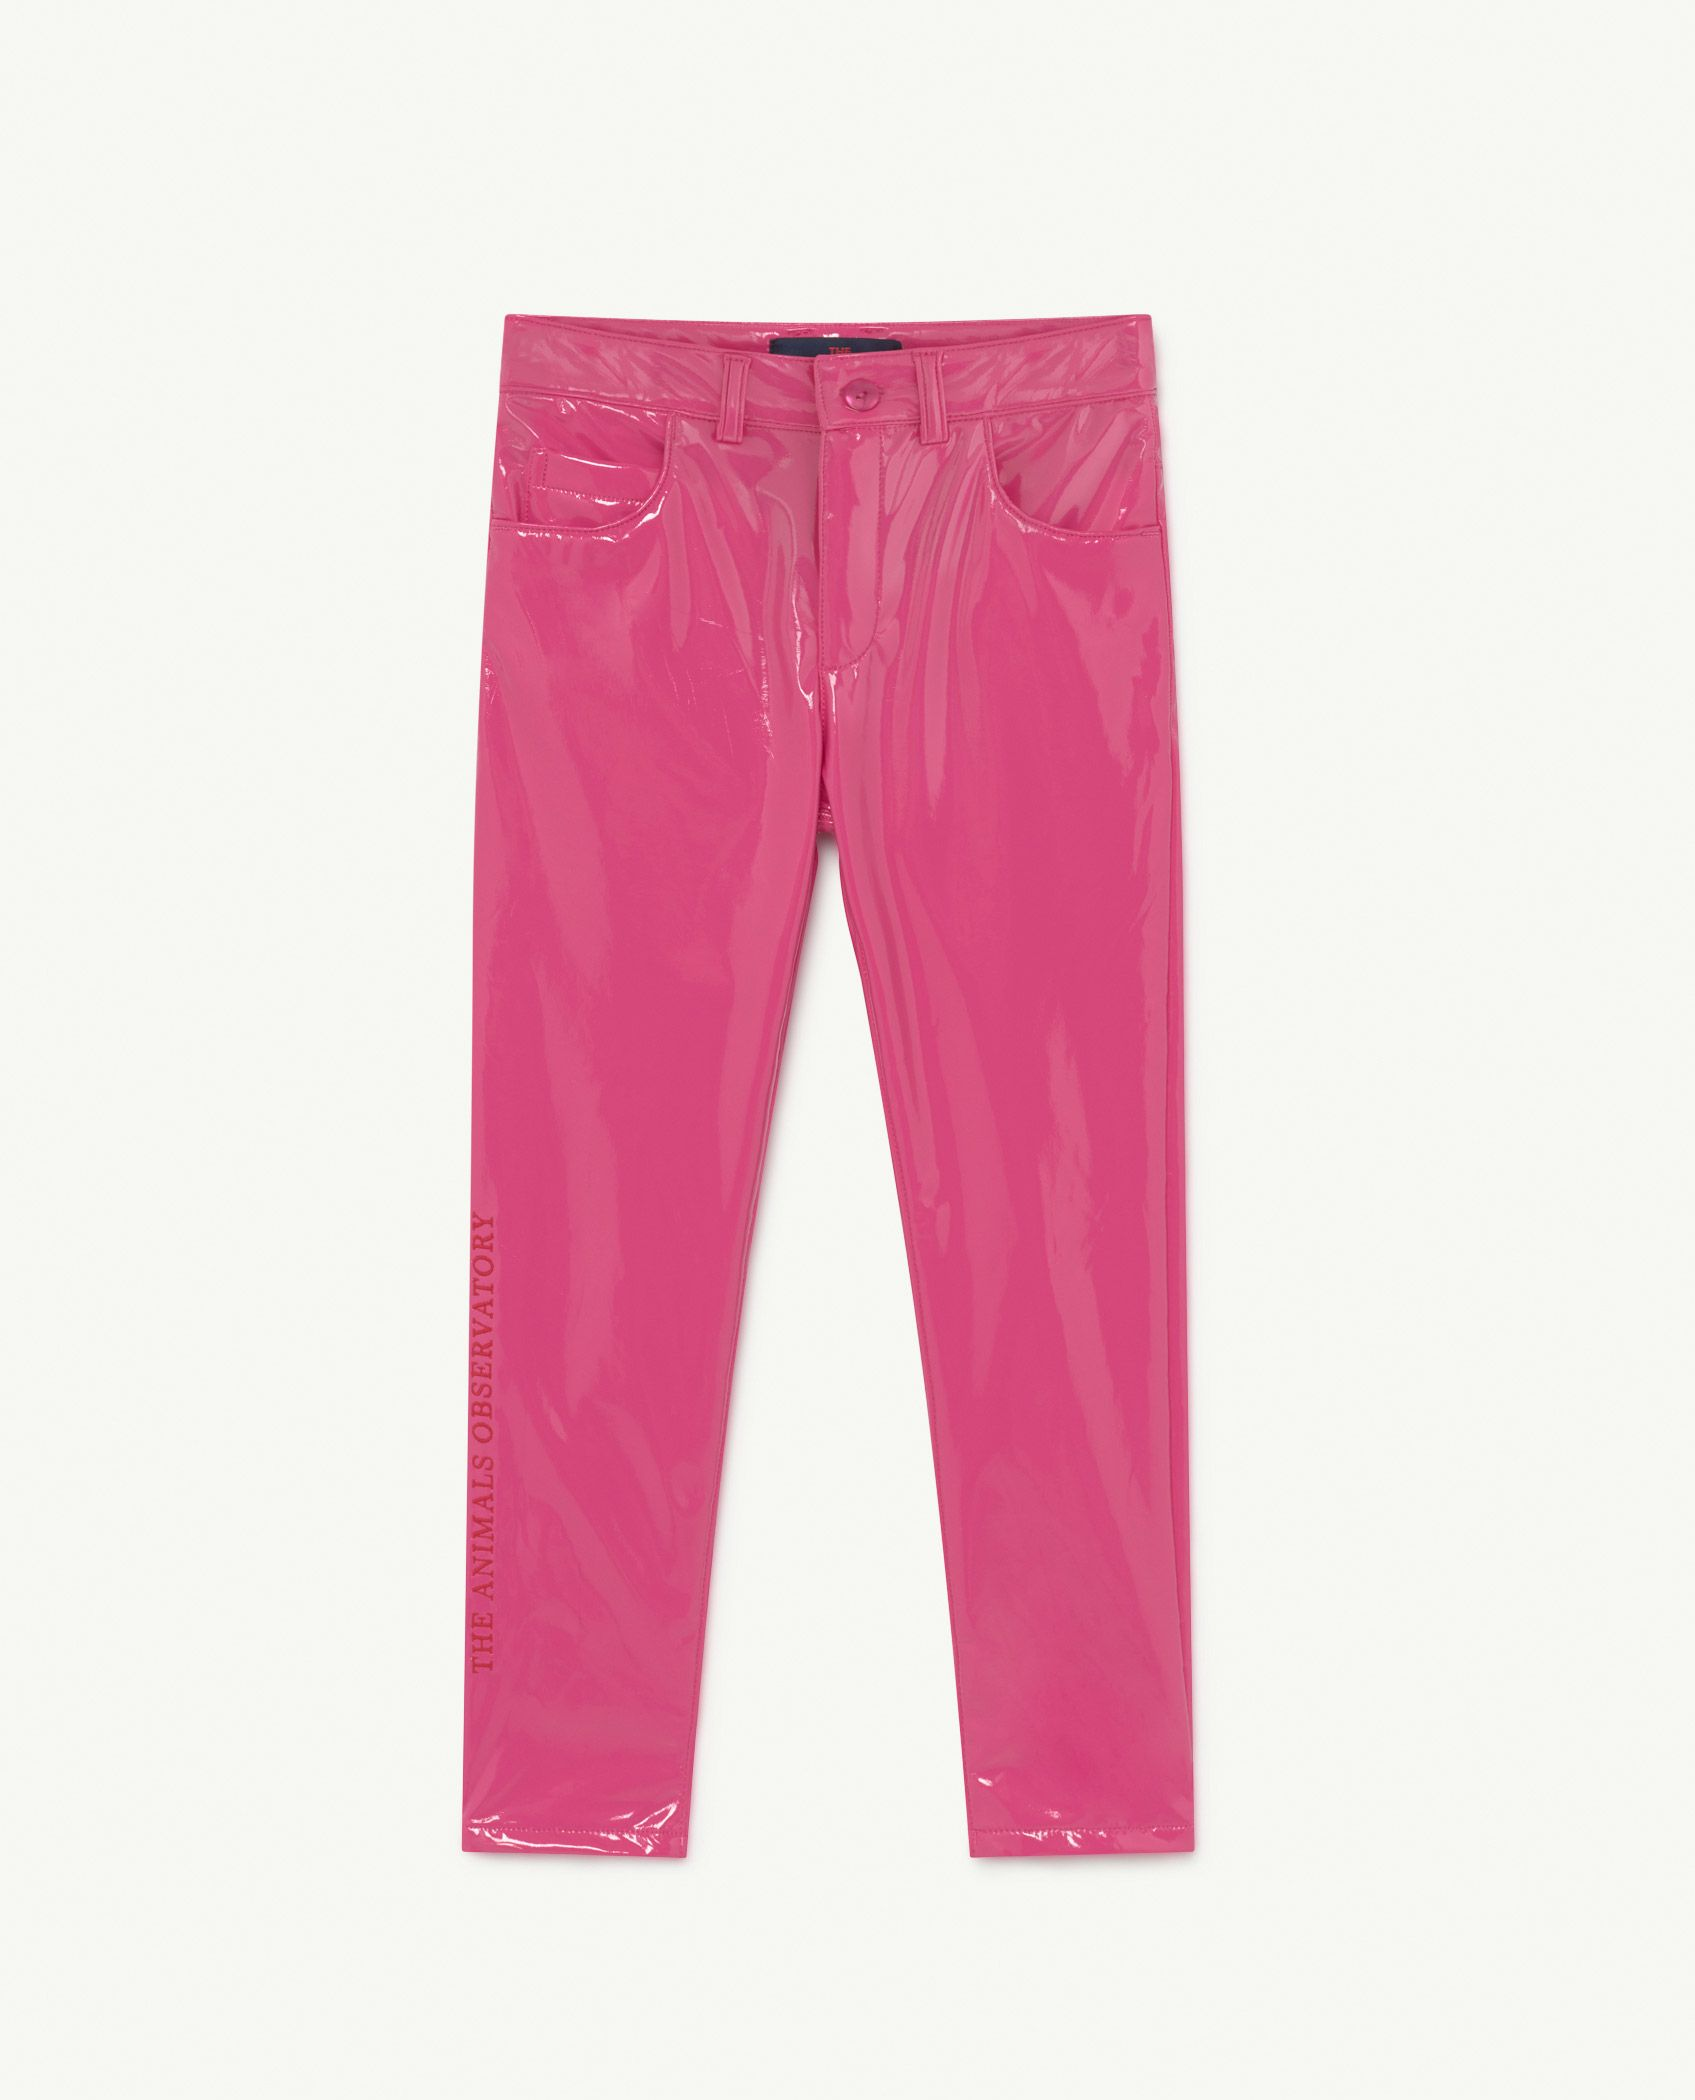 Pink The Animals Mosquito Trousers img-1